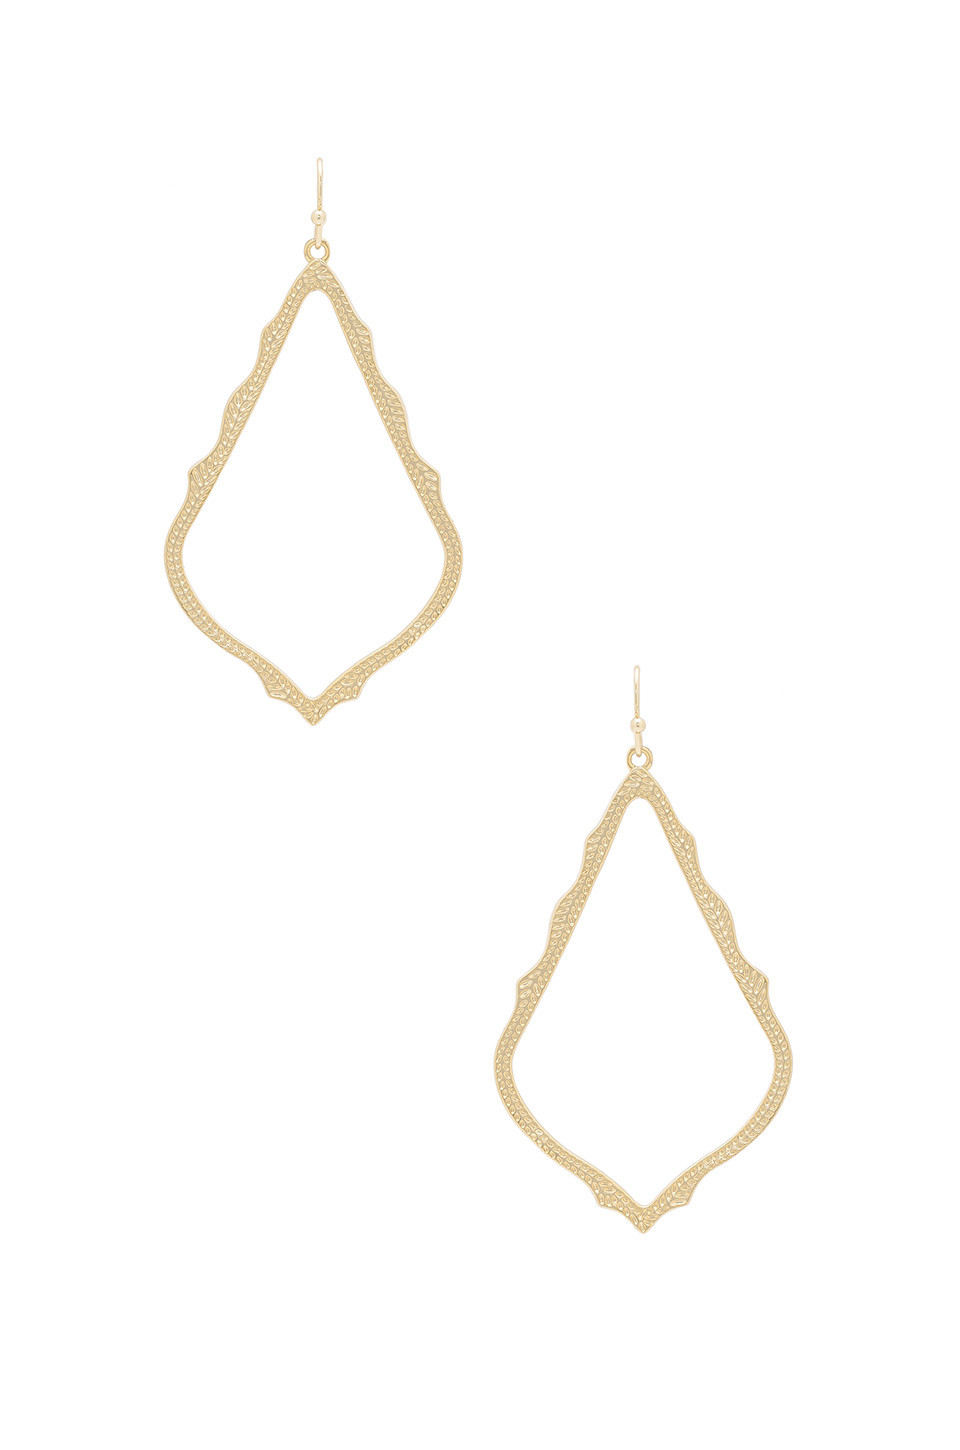 Kendra Scott Sophee Earrings in gold / metallic